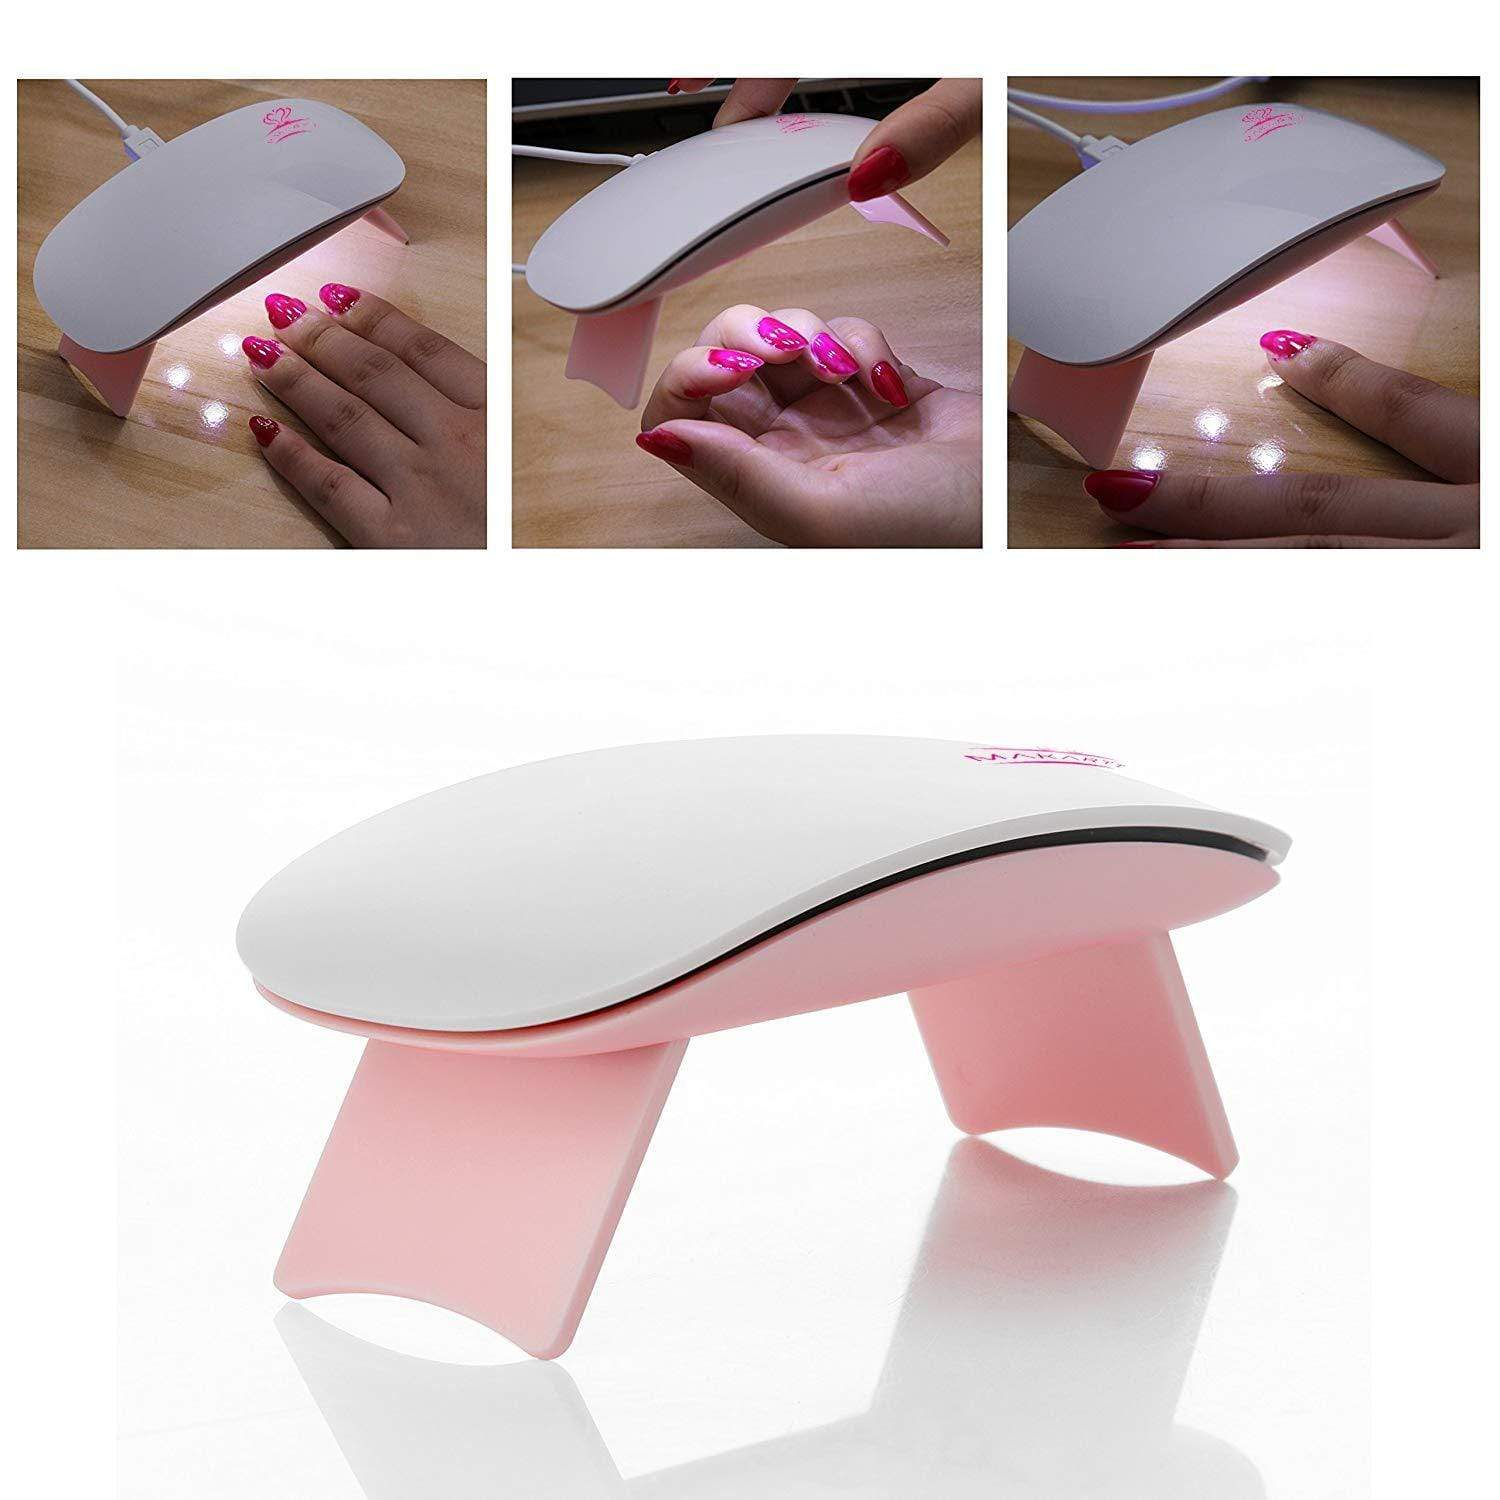 Mini Portable USB LED UV Nail Curing Lamp - Makartt